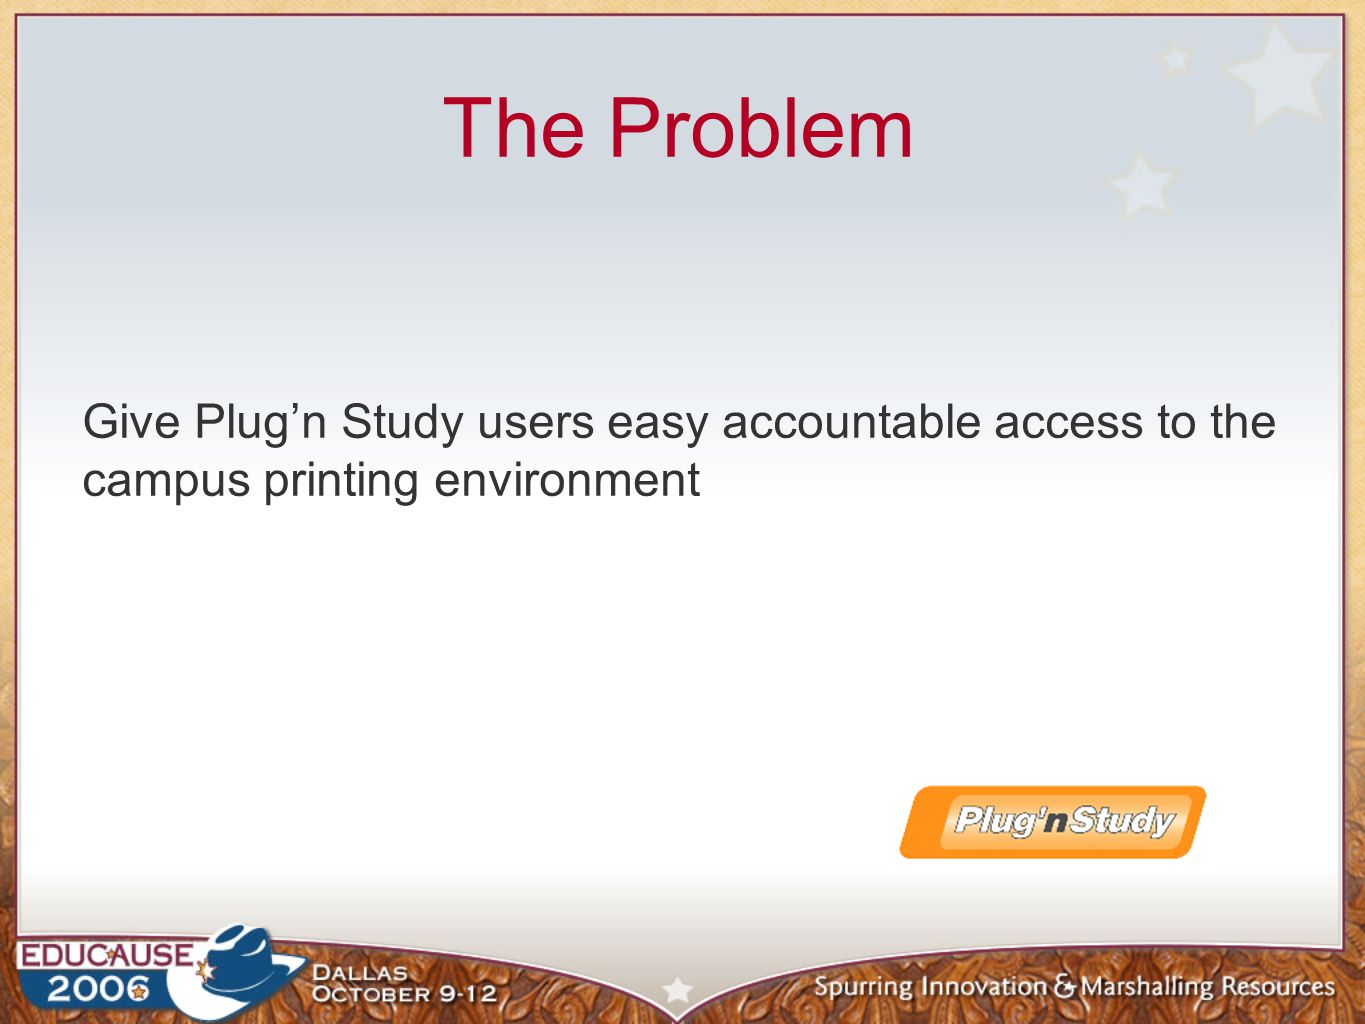 The Problem Give Plug'n Study users easy accountable access to the campus printing environment